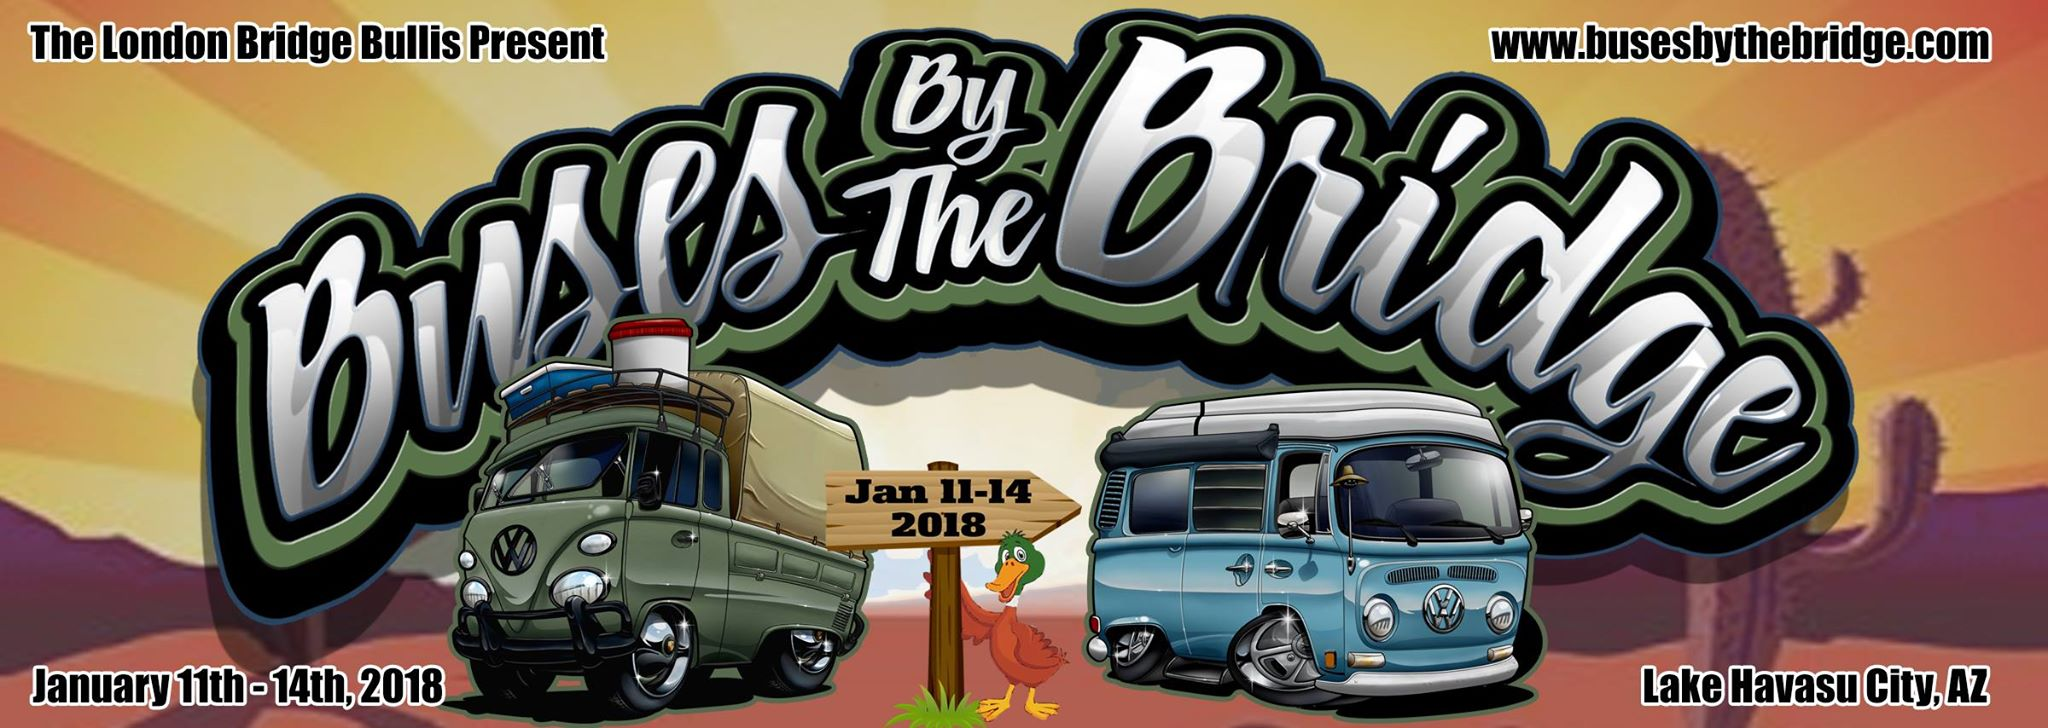 Buses by the Bridge 2018